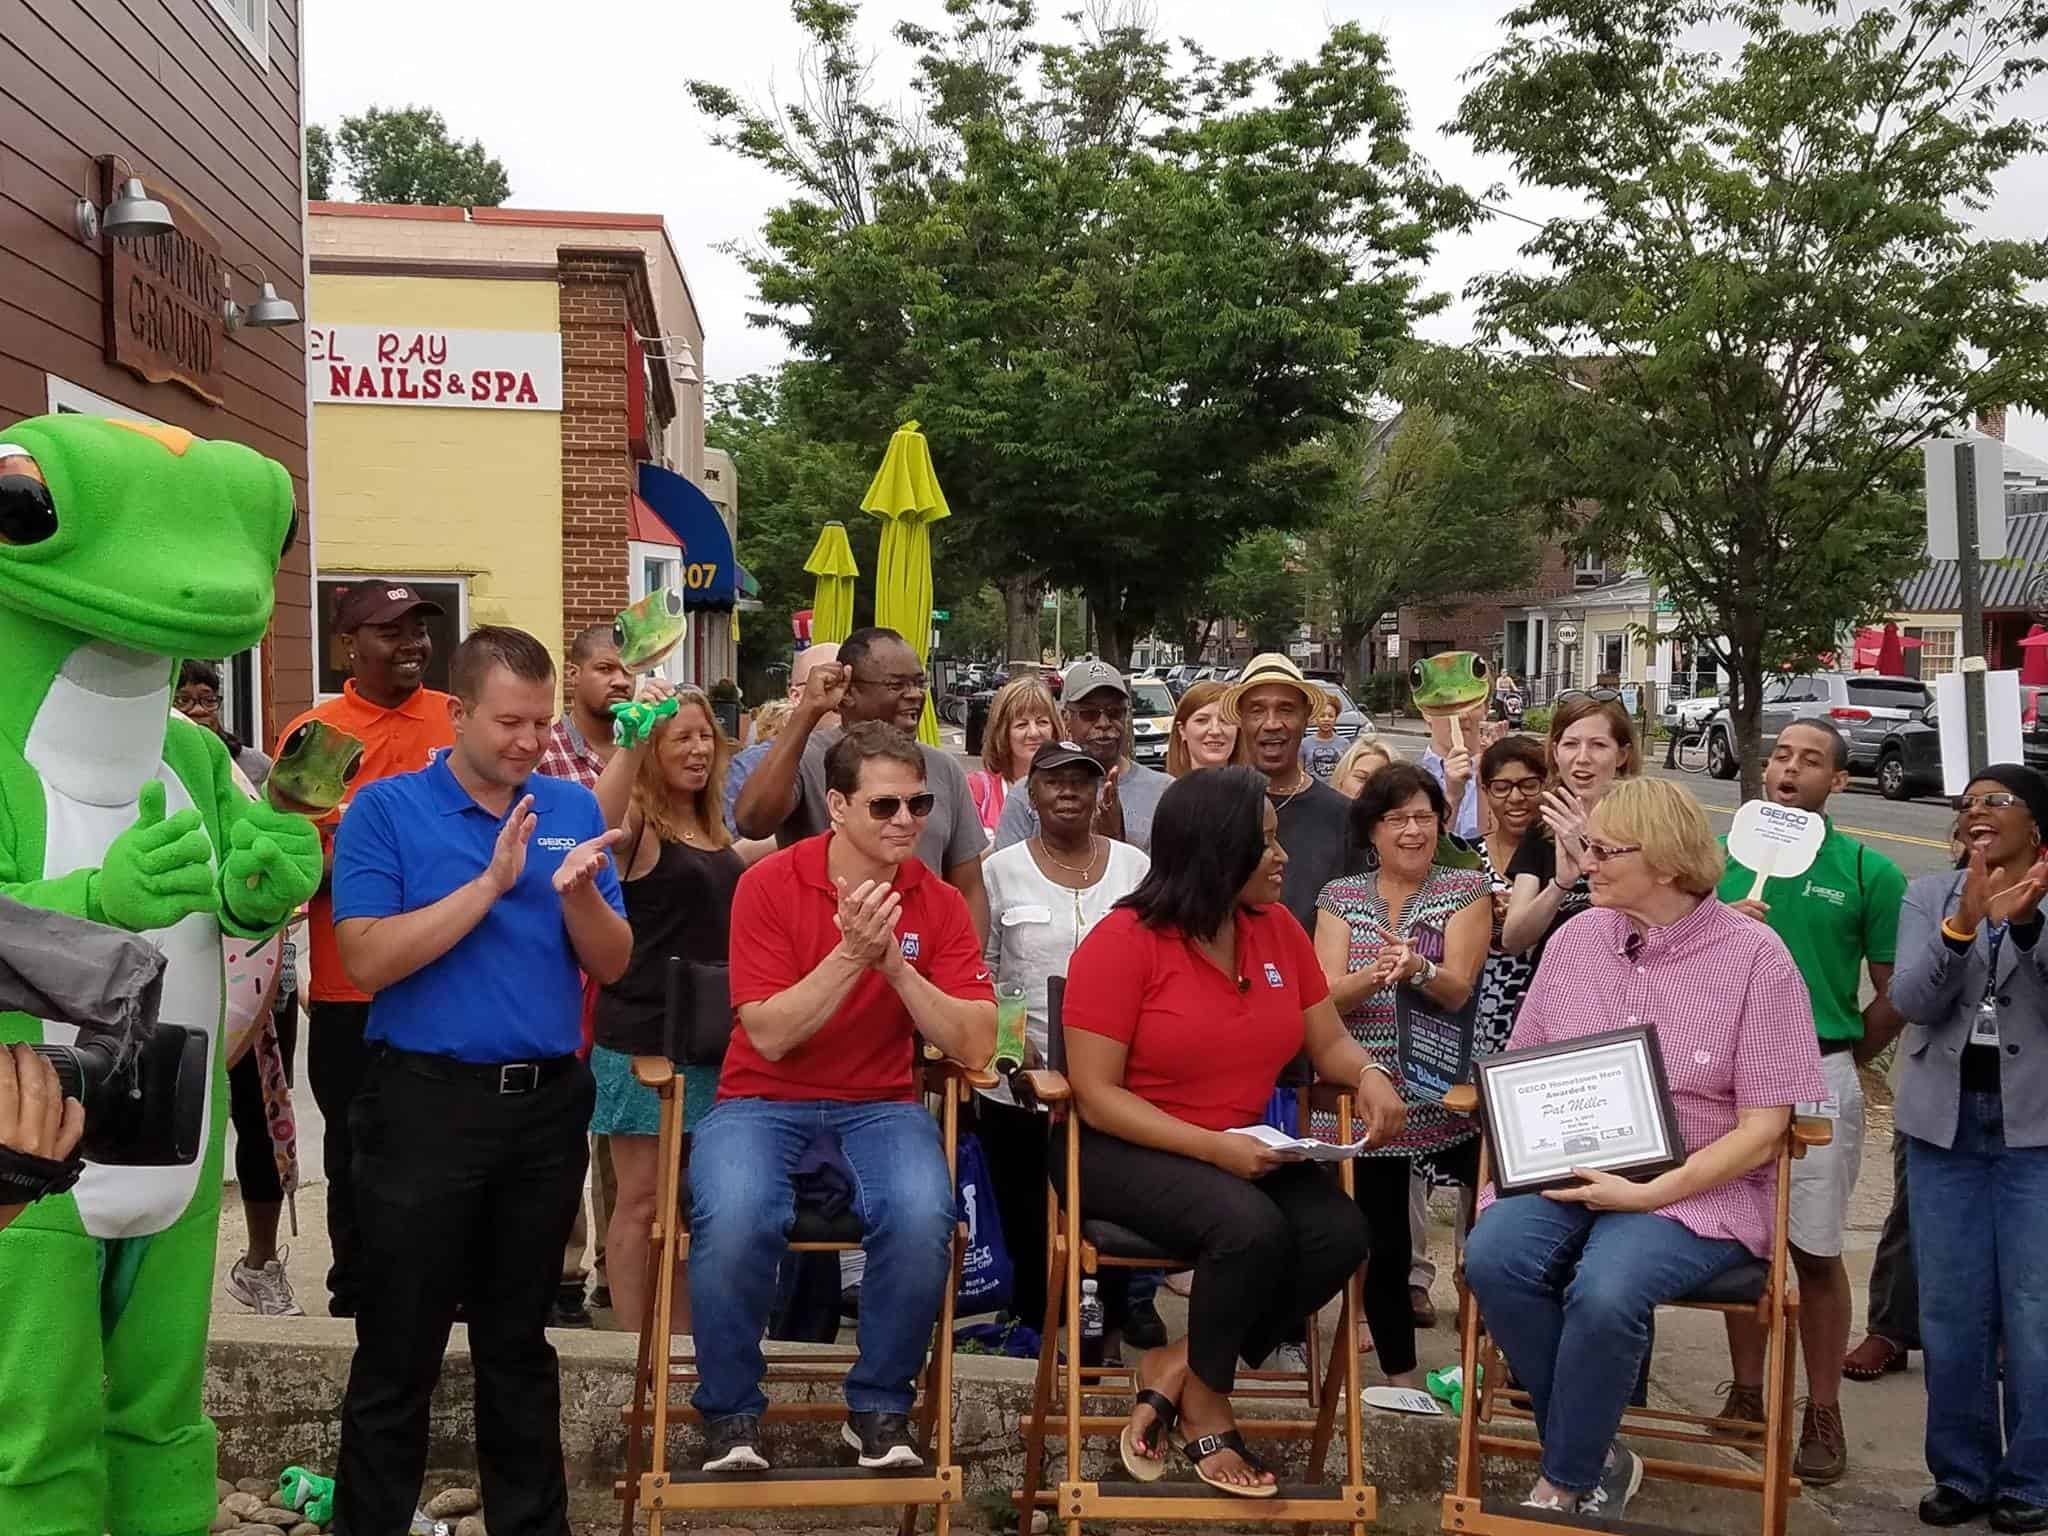 FOX 5's 'Zip Trip' team is returning to Alexandria, Virginia Friday, June, 8th broadcasting their morning show live from 6 – 11 a.m. at Potomac Yard Park in Alexandria, Virginia.